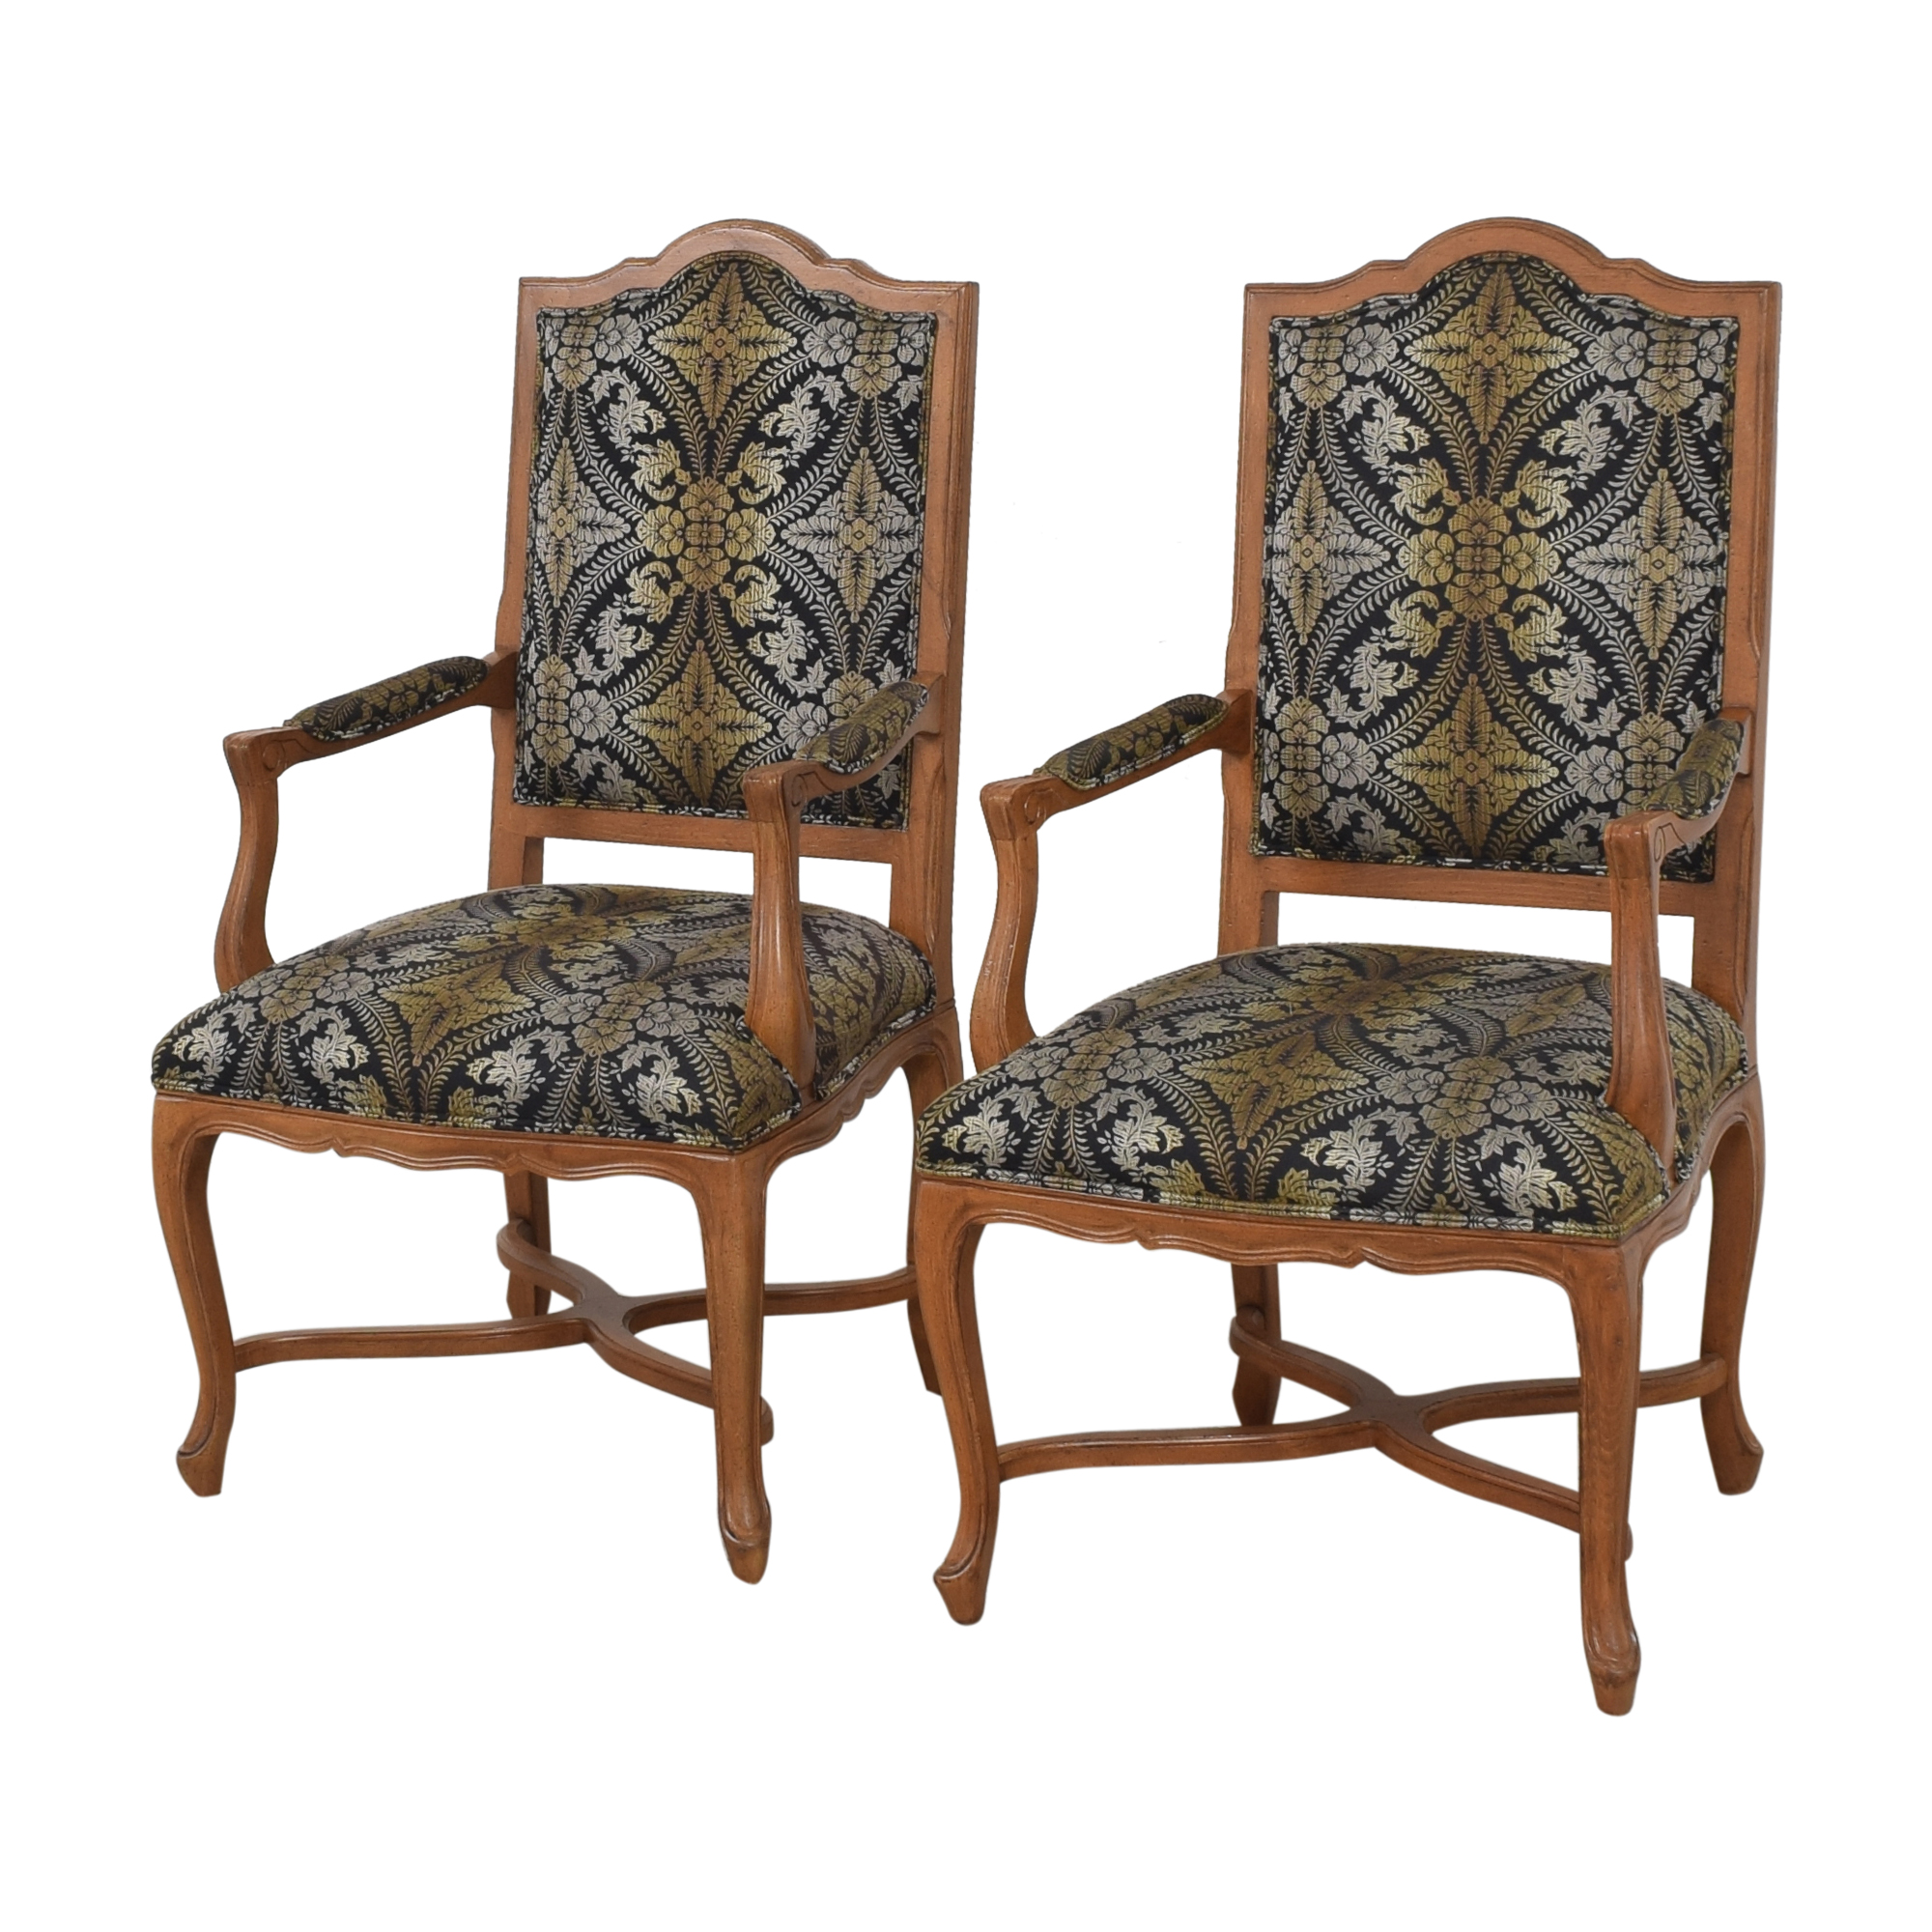 Ethan Allen Ethan Allen Dining Arm Chairs multi-colored